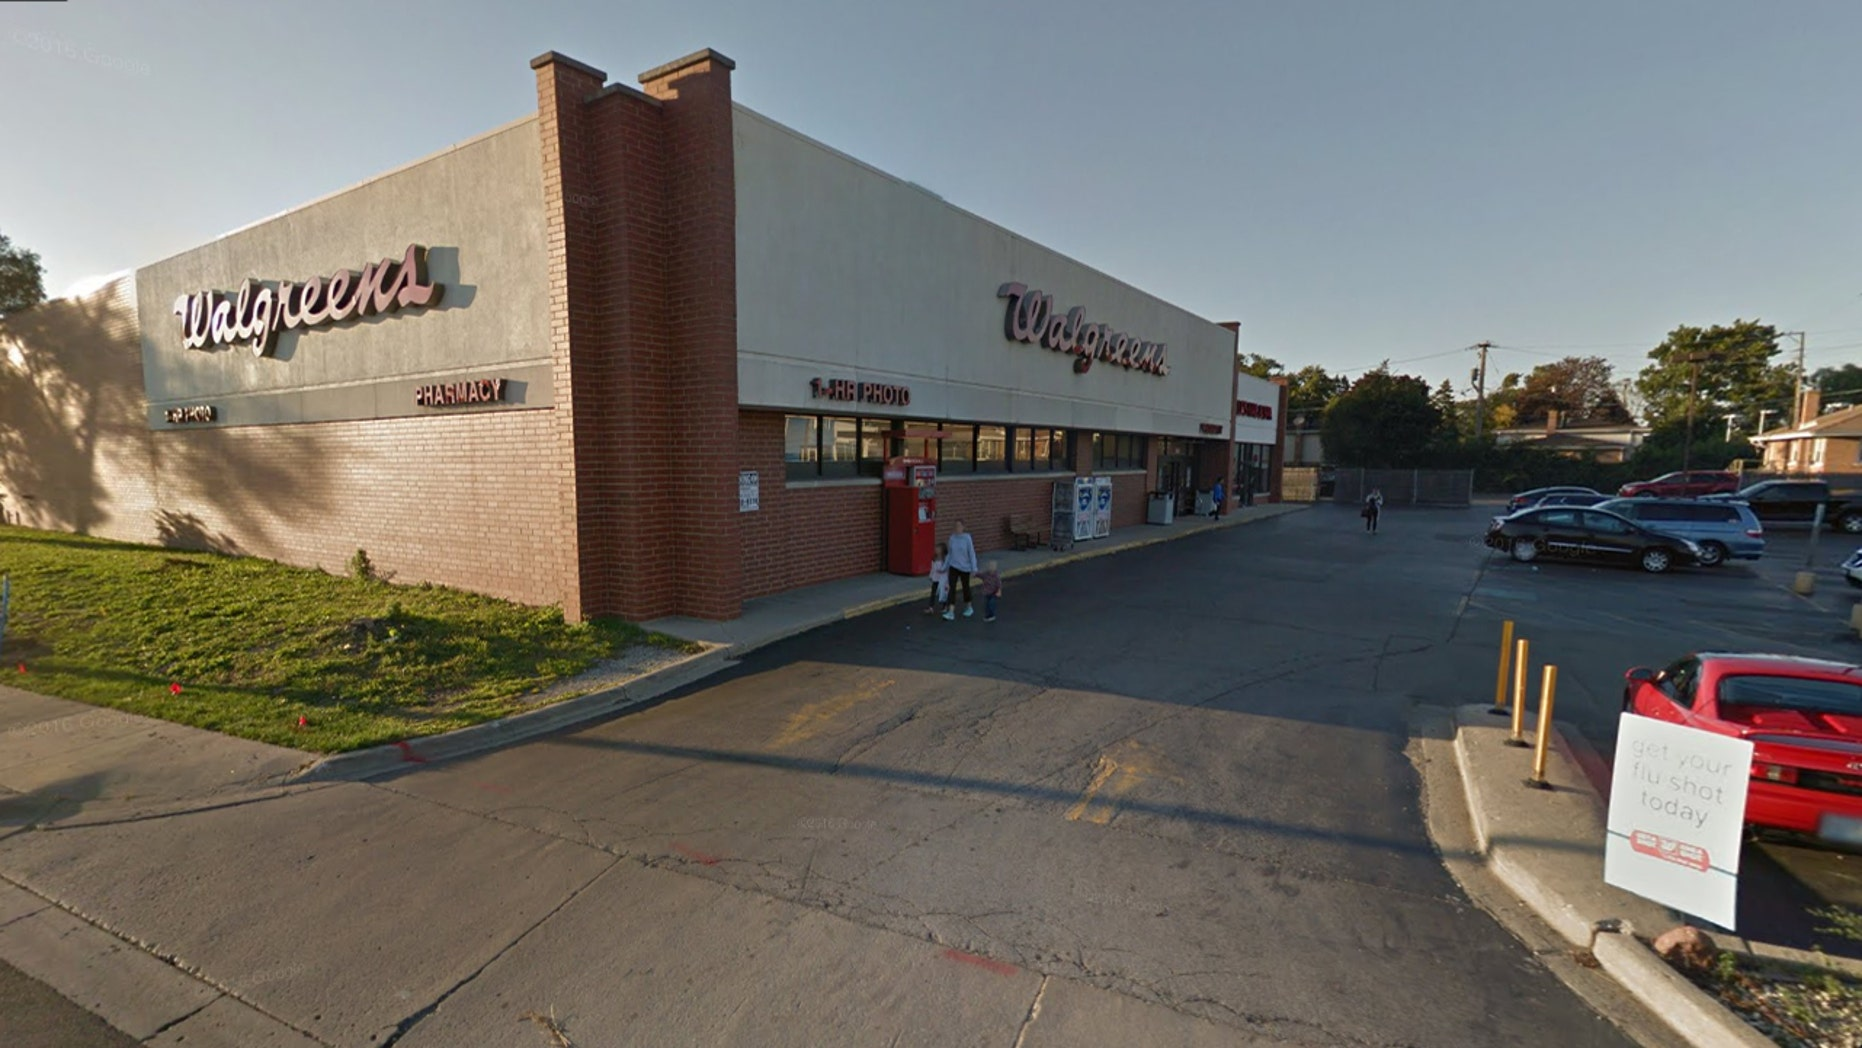 A hidden camera was found in the women's bathroom of this Illinois Walgreen's, police said.